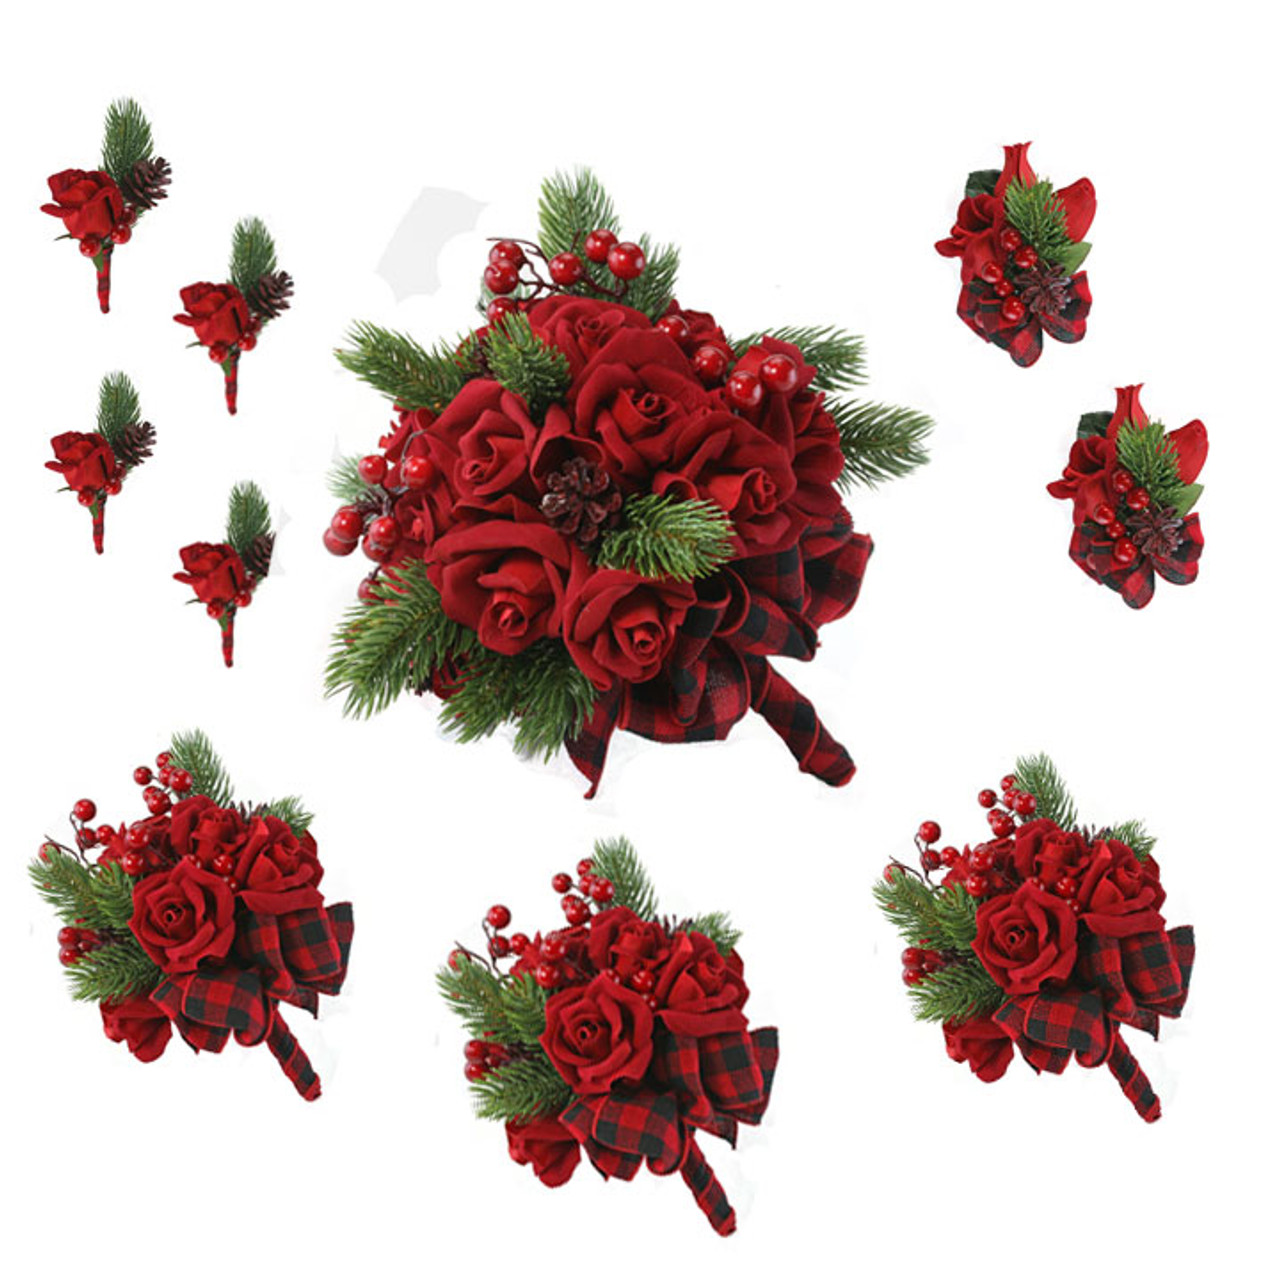 Velvet Red Rose Wedding Flower Package Silk Wedding Flowers Christmas Cheap Bridal Bouquets Bridesmaid Bouquets Boutonniere Corsage Artificial Wedding Bouquets 10 Pc Package Thebridesbouquet Com